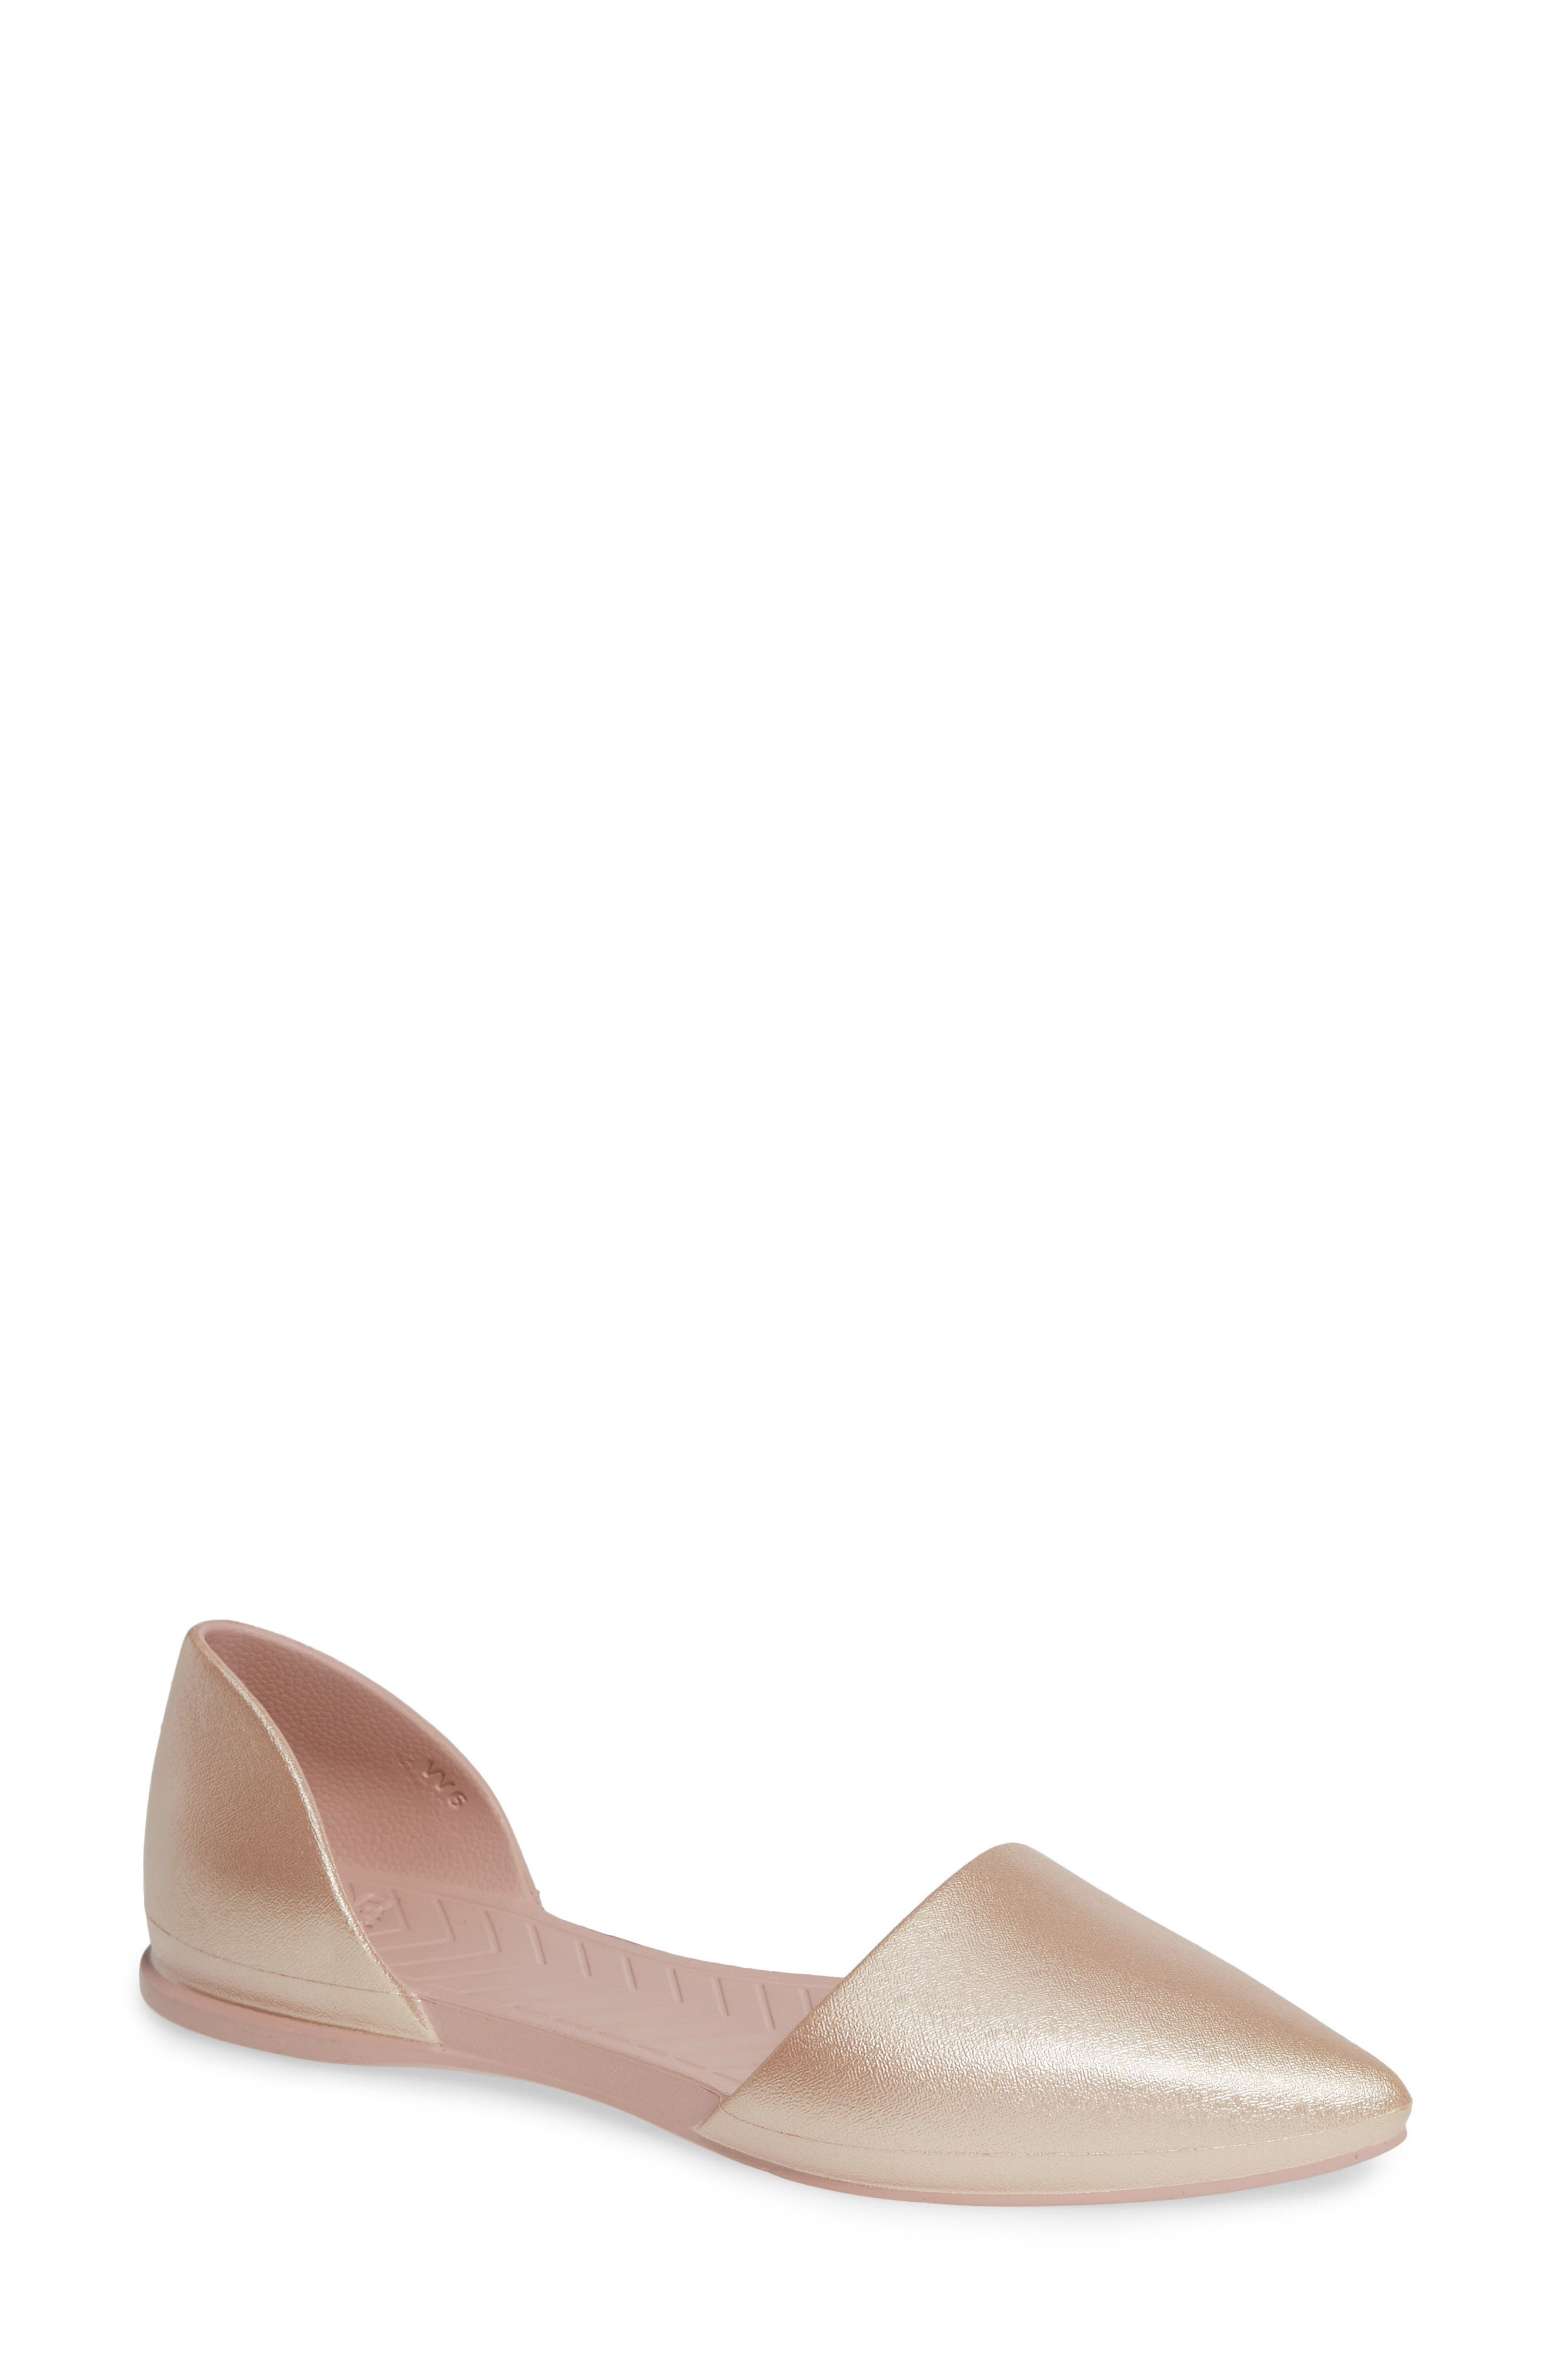 Native Shoes Audrey Vegan Open Sided Flat, Pink